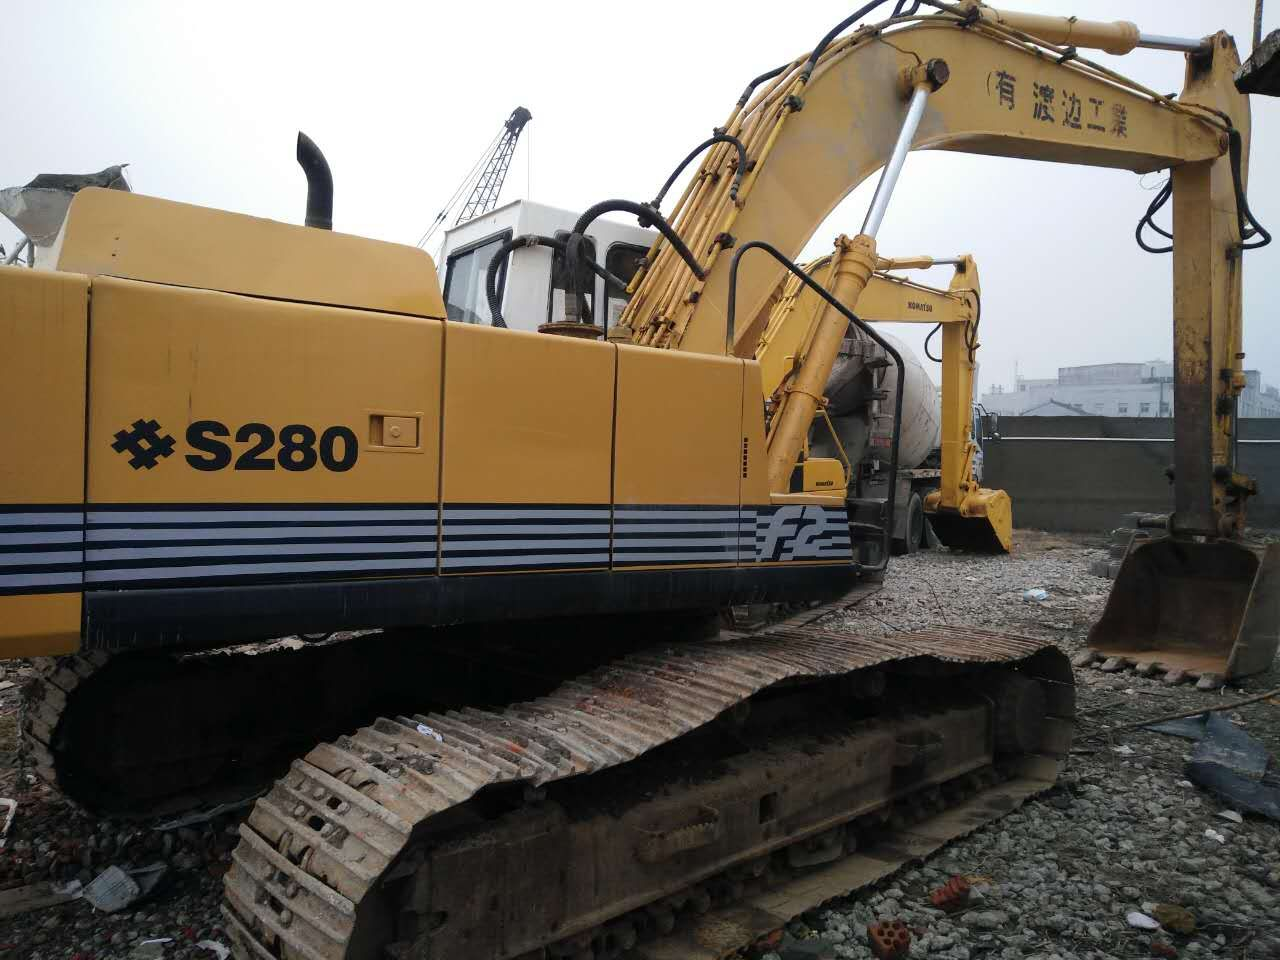 sumitomo used crawler excavator S280 good condition for sale